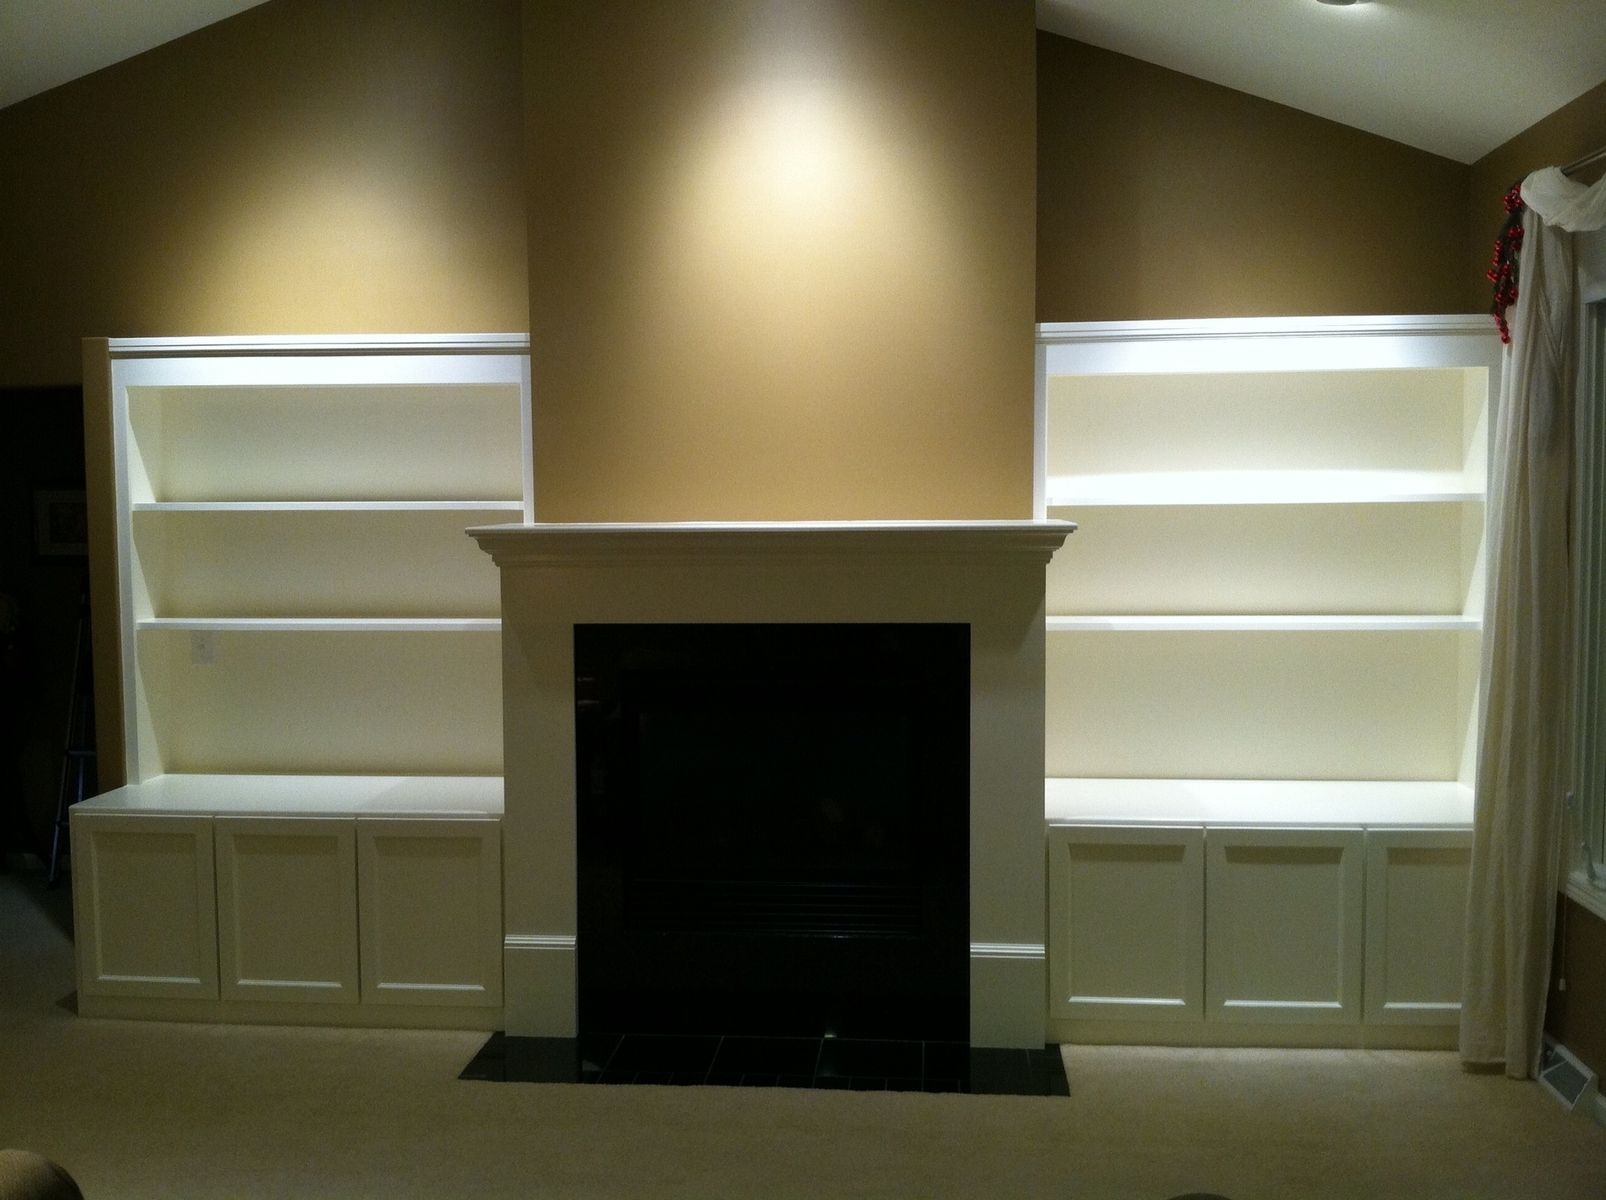 Hand Made Build-In Media Cabinets, Shelving & Fireplace ...